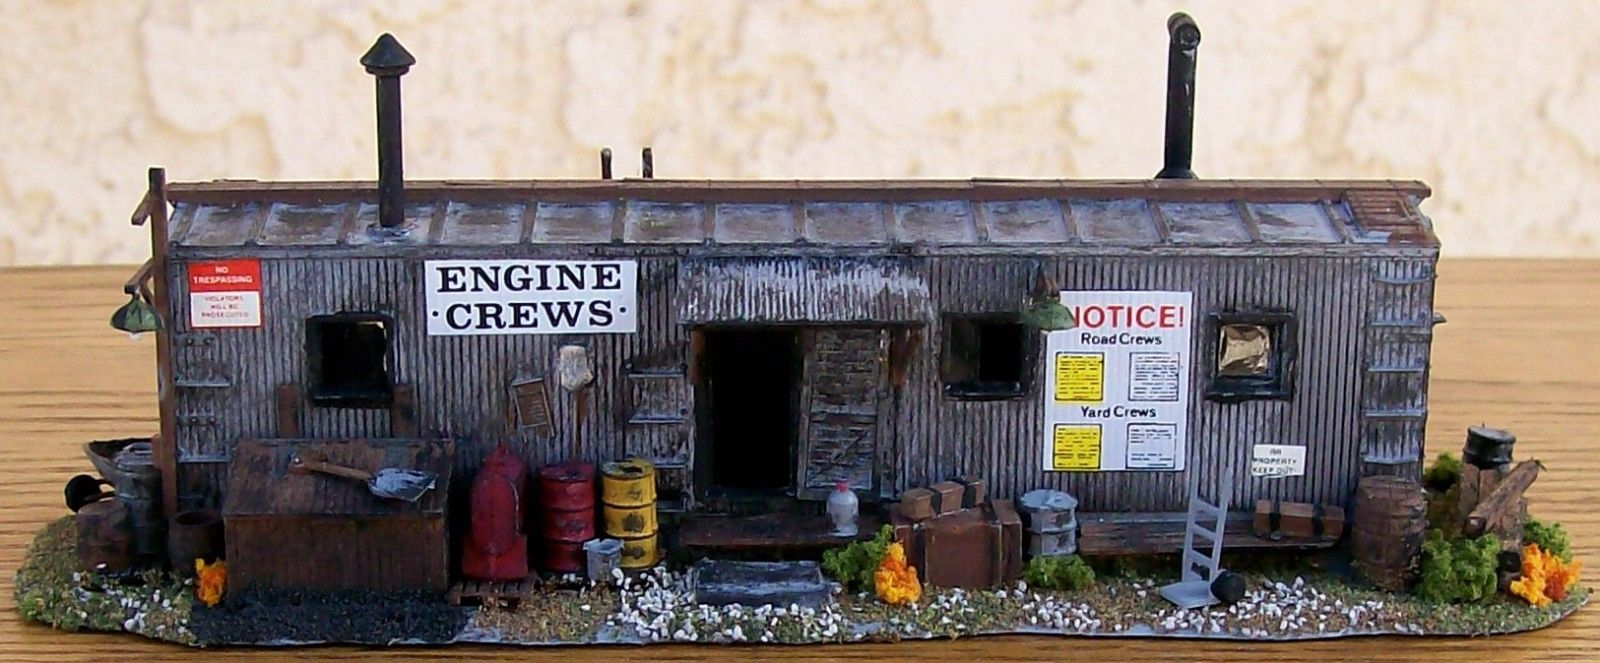 HO Custom Built & Detailed-ENGINE CREW SHANTY BUILDING~w/LOTS OF EXTRAS! SWEET!